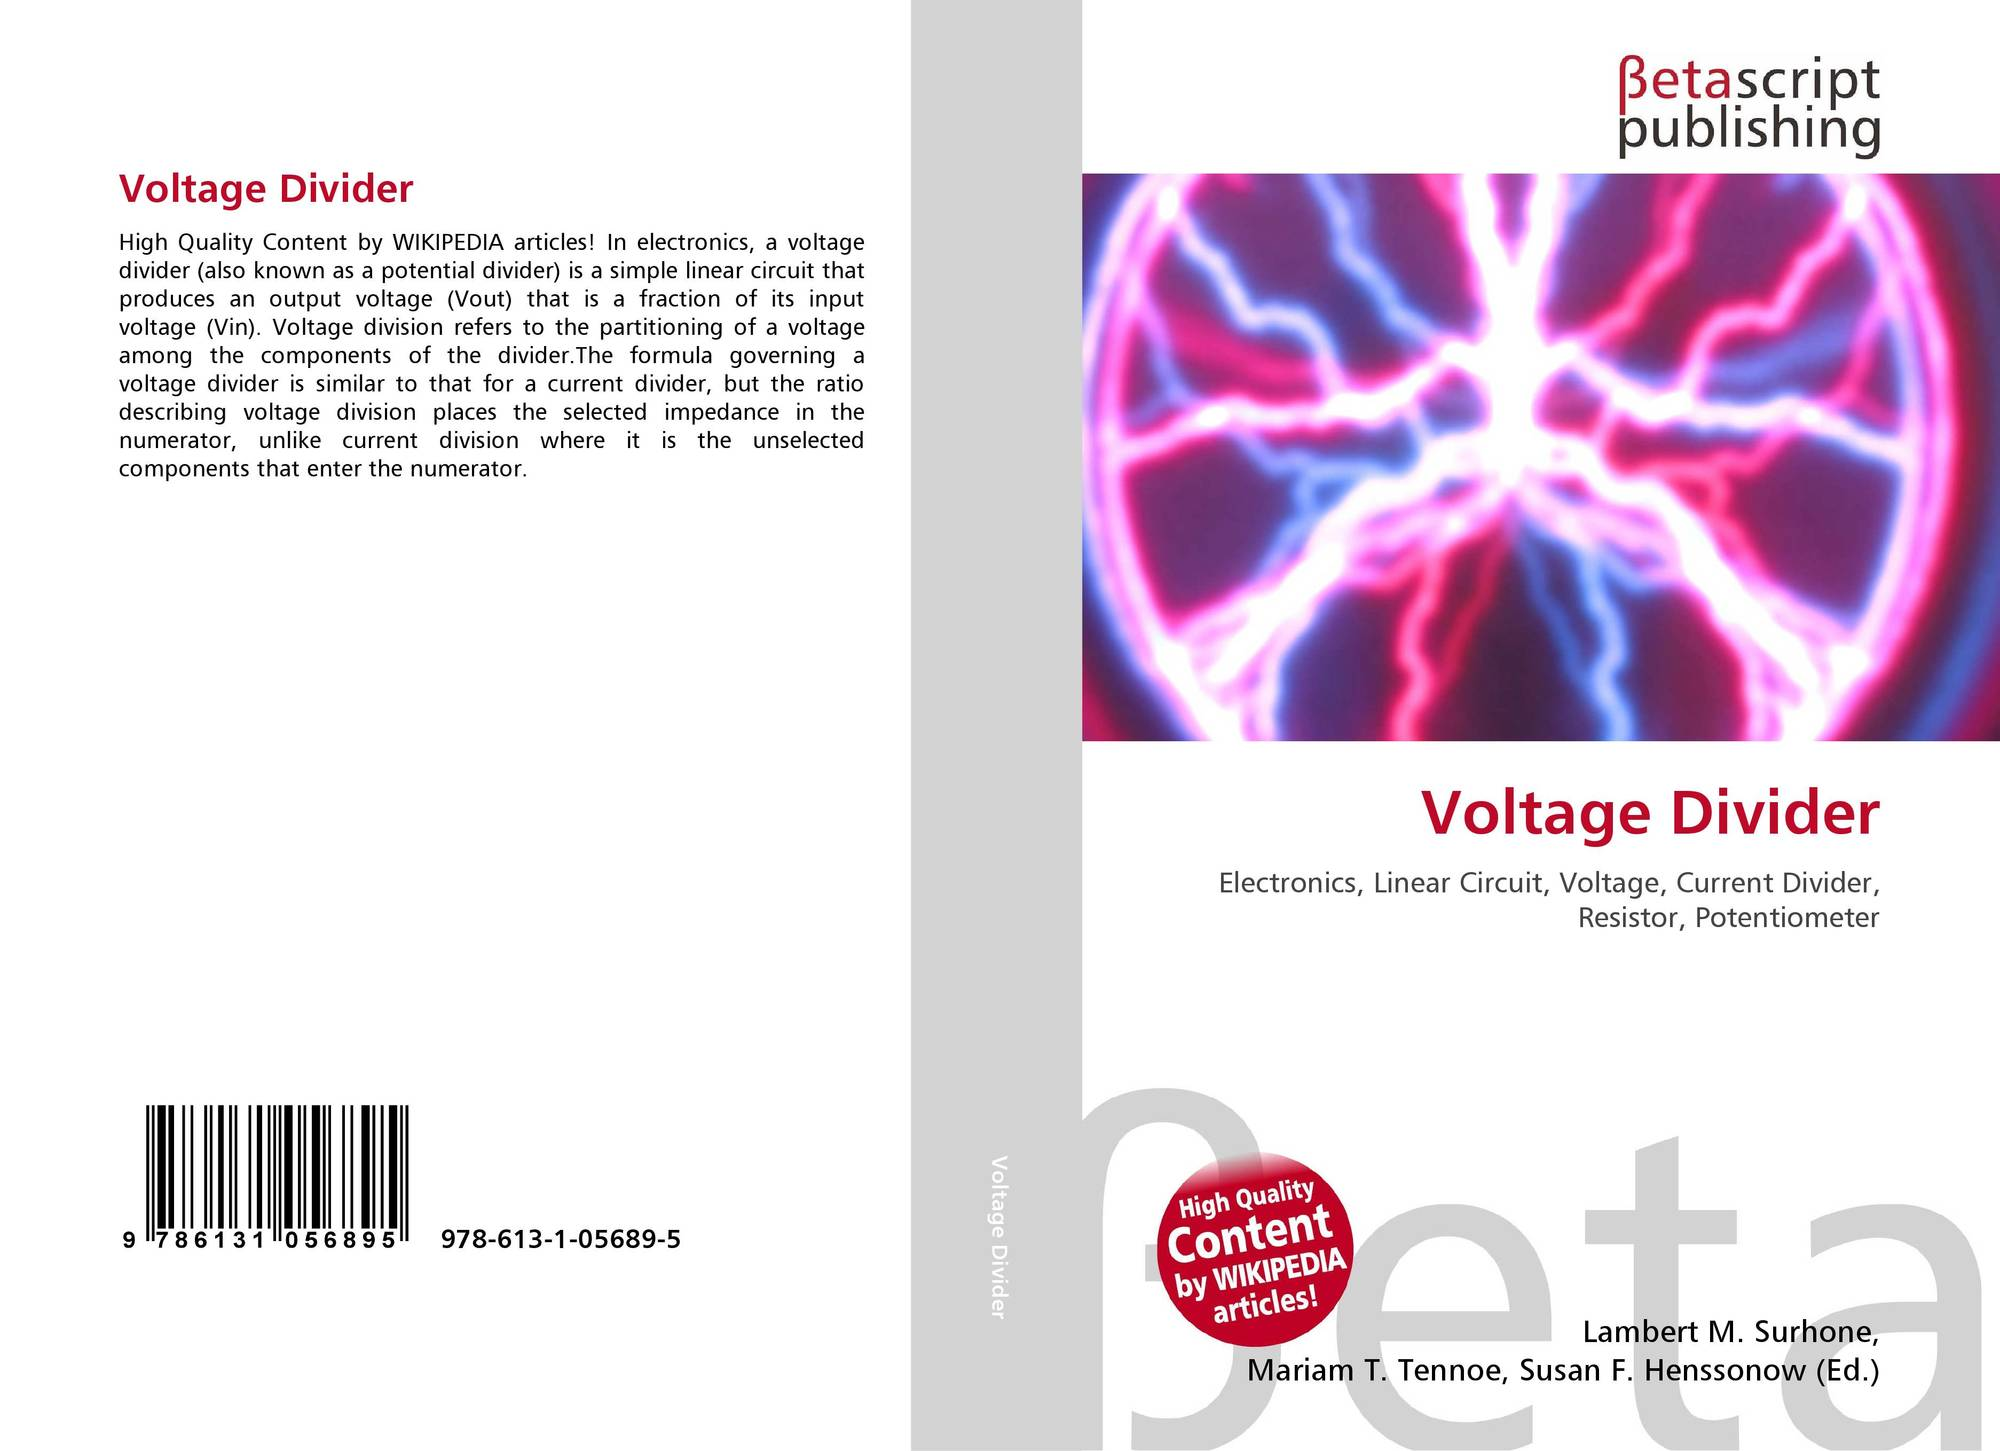 Voltage Divider 978 613 1 05689 5 6131056897 9786131056895 Potential Circuit Bookcover Of